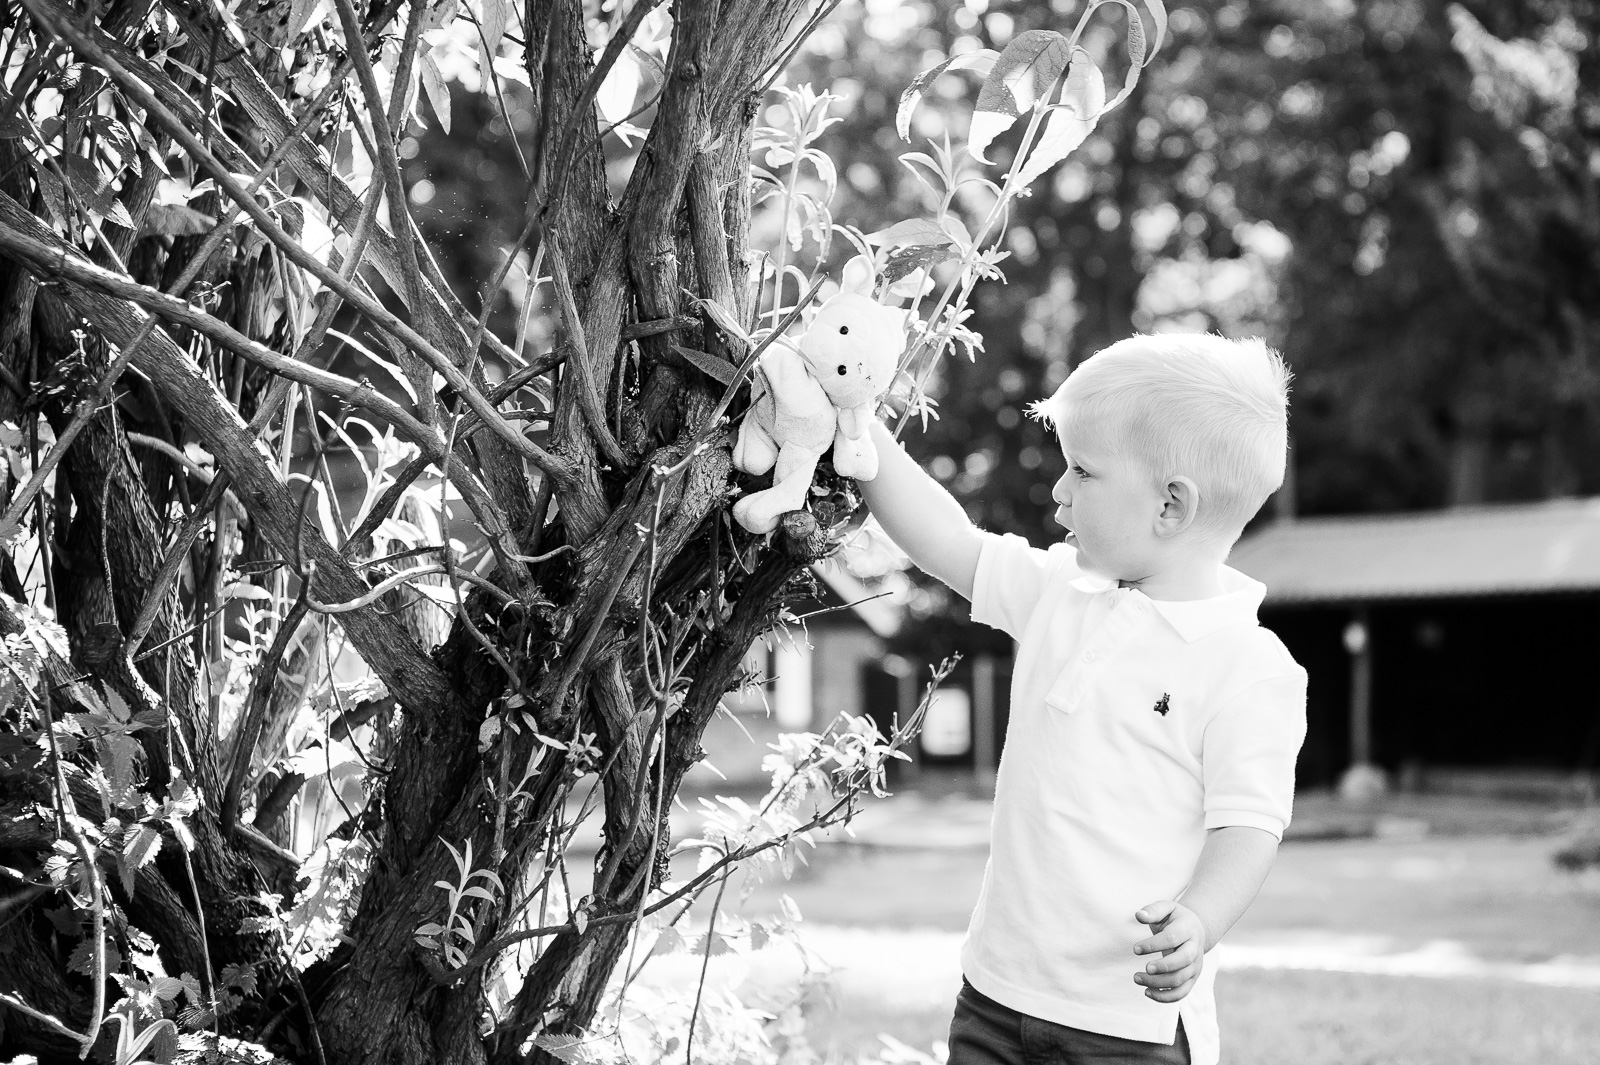 Beautiful and honest imagery family photography